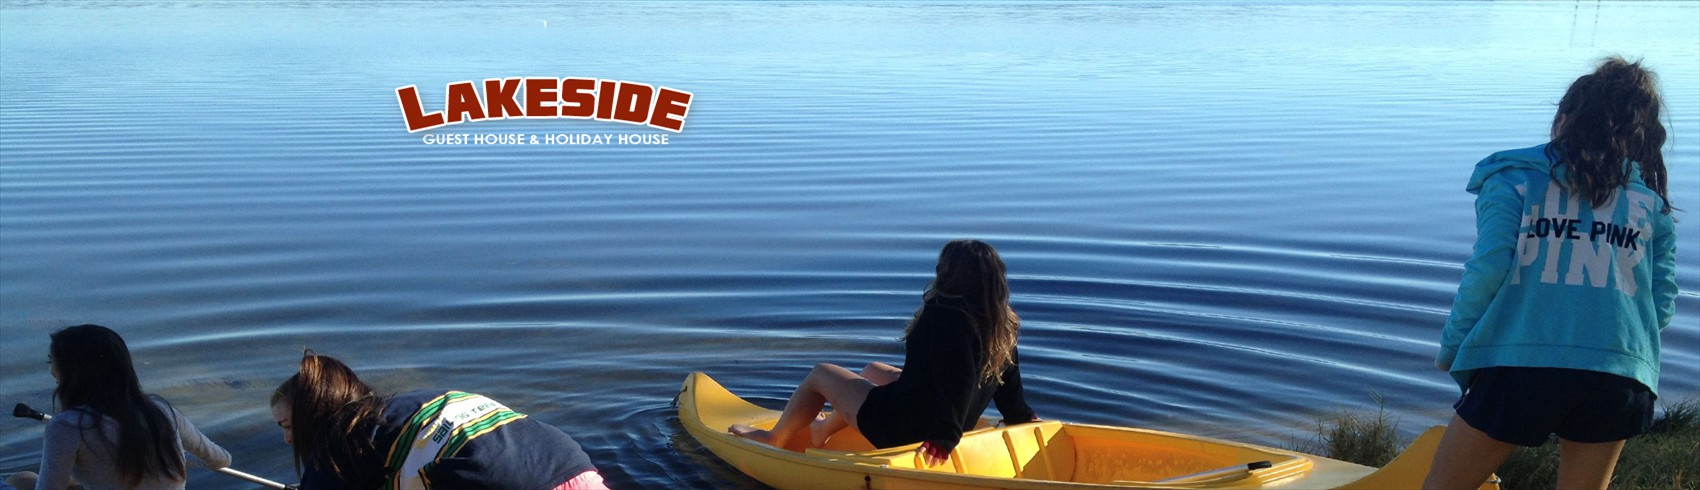 Activities for the whole family at The Lakeside Guesthouse & Holiday House - Lake Macquarie